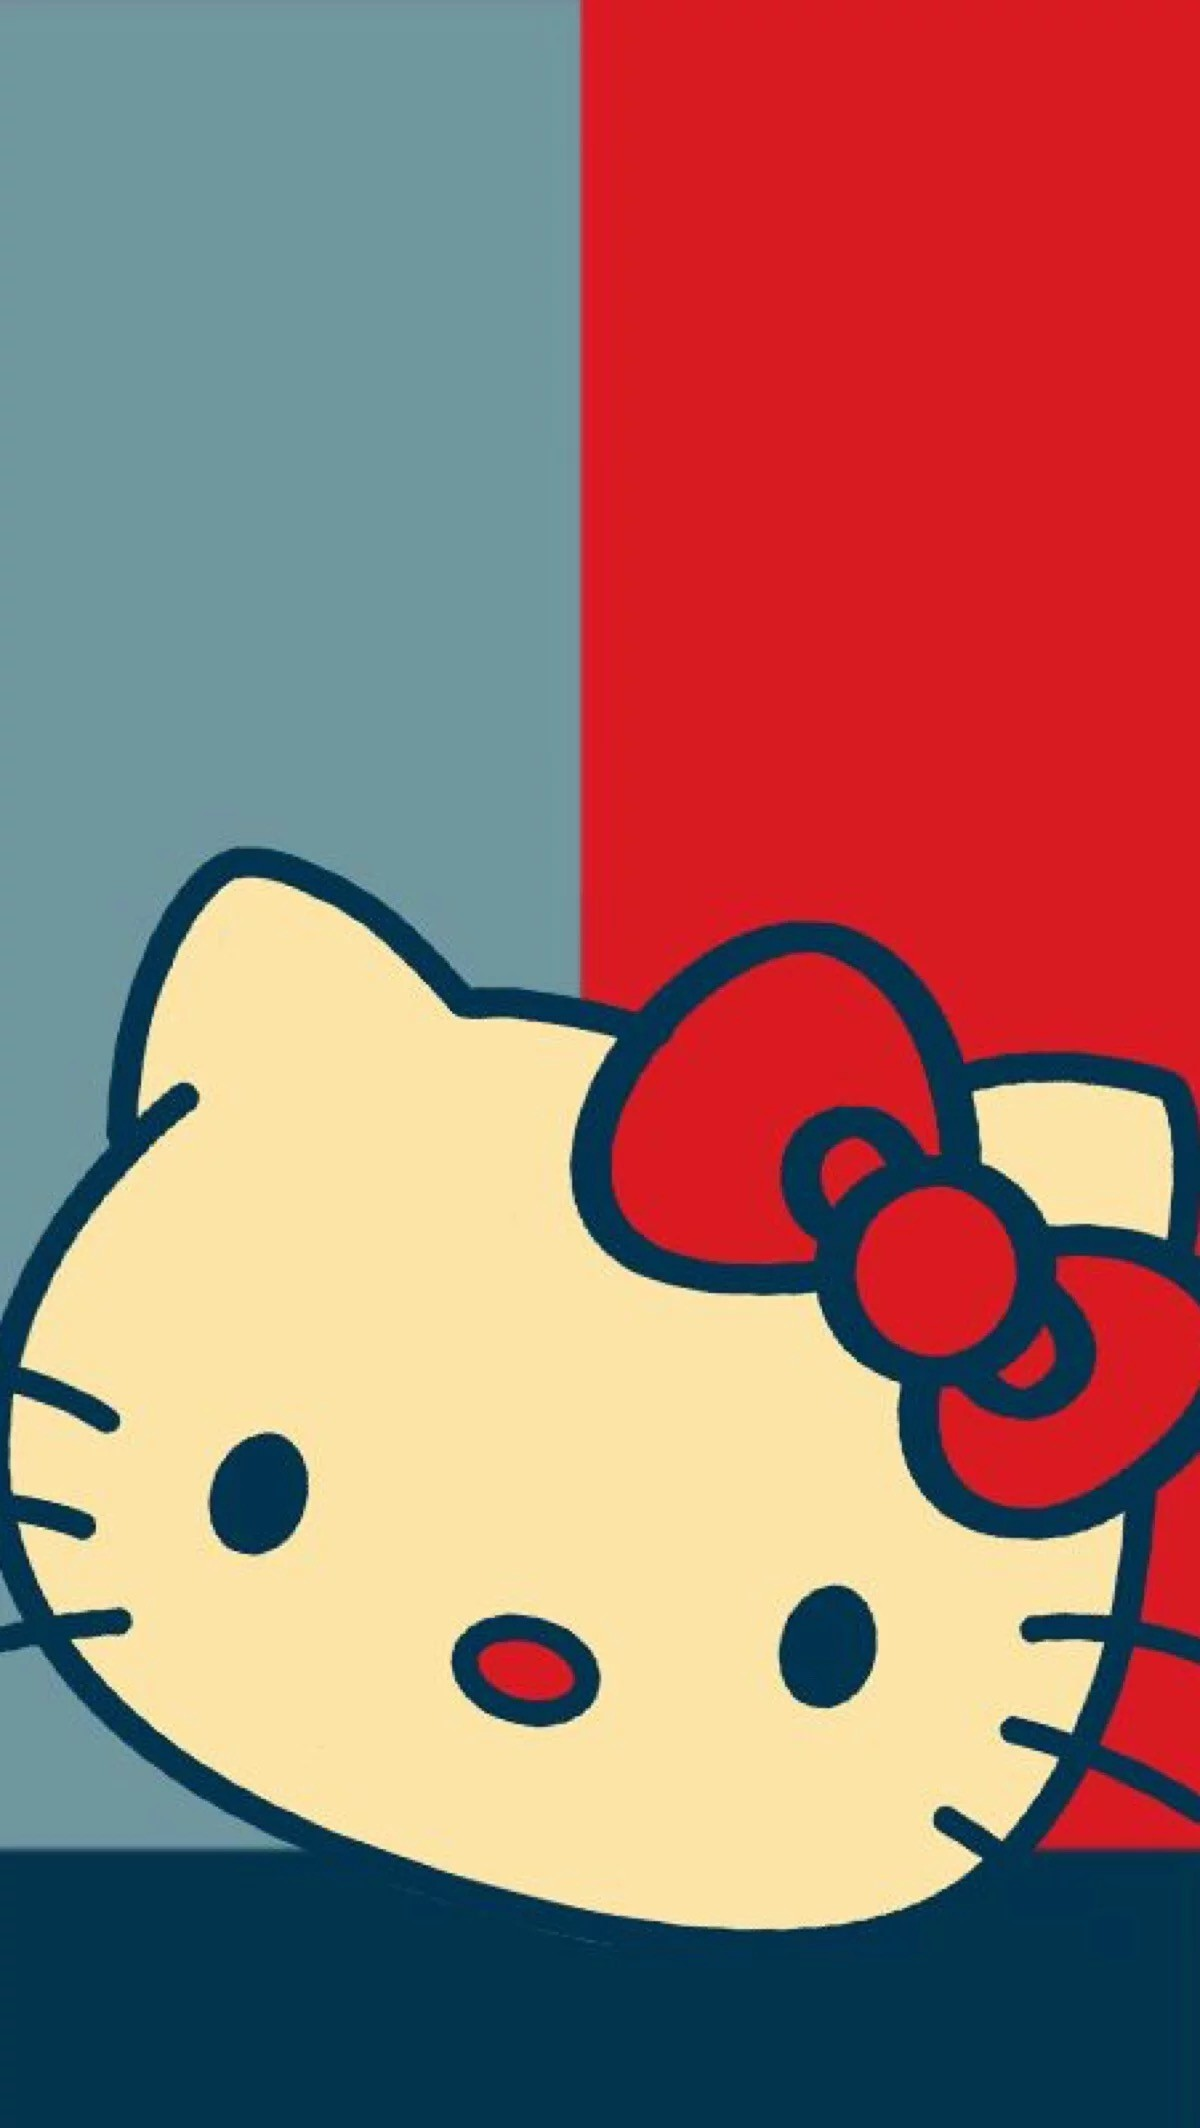 Hello kitty wallpaper for iphone 72 images 1920x1200 hello kitty wallpaper iphone hello kitty wallpaper iphone altavistaventures Choice Image